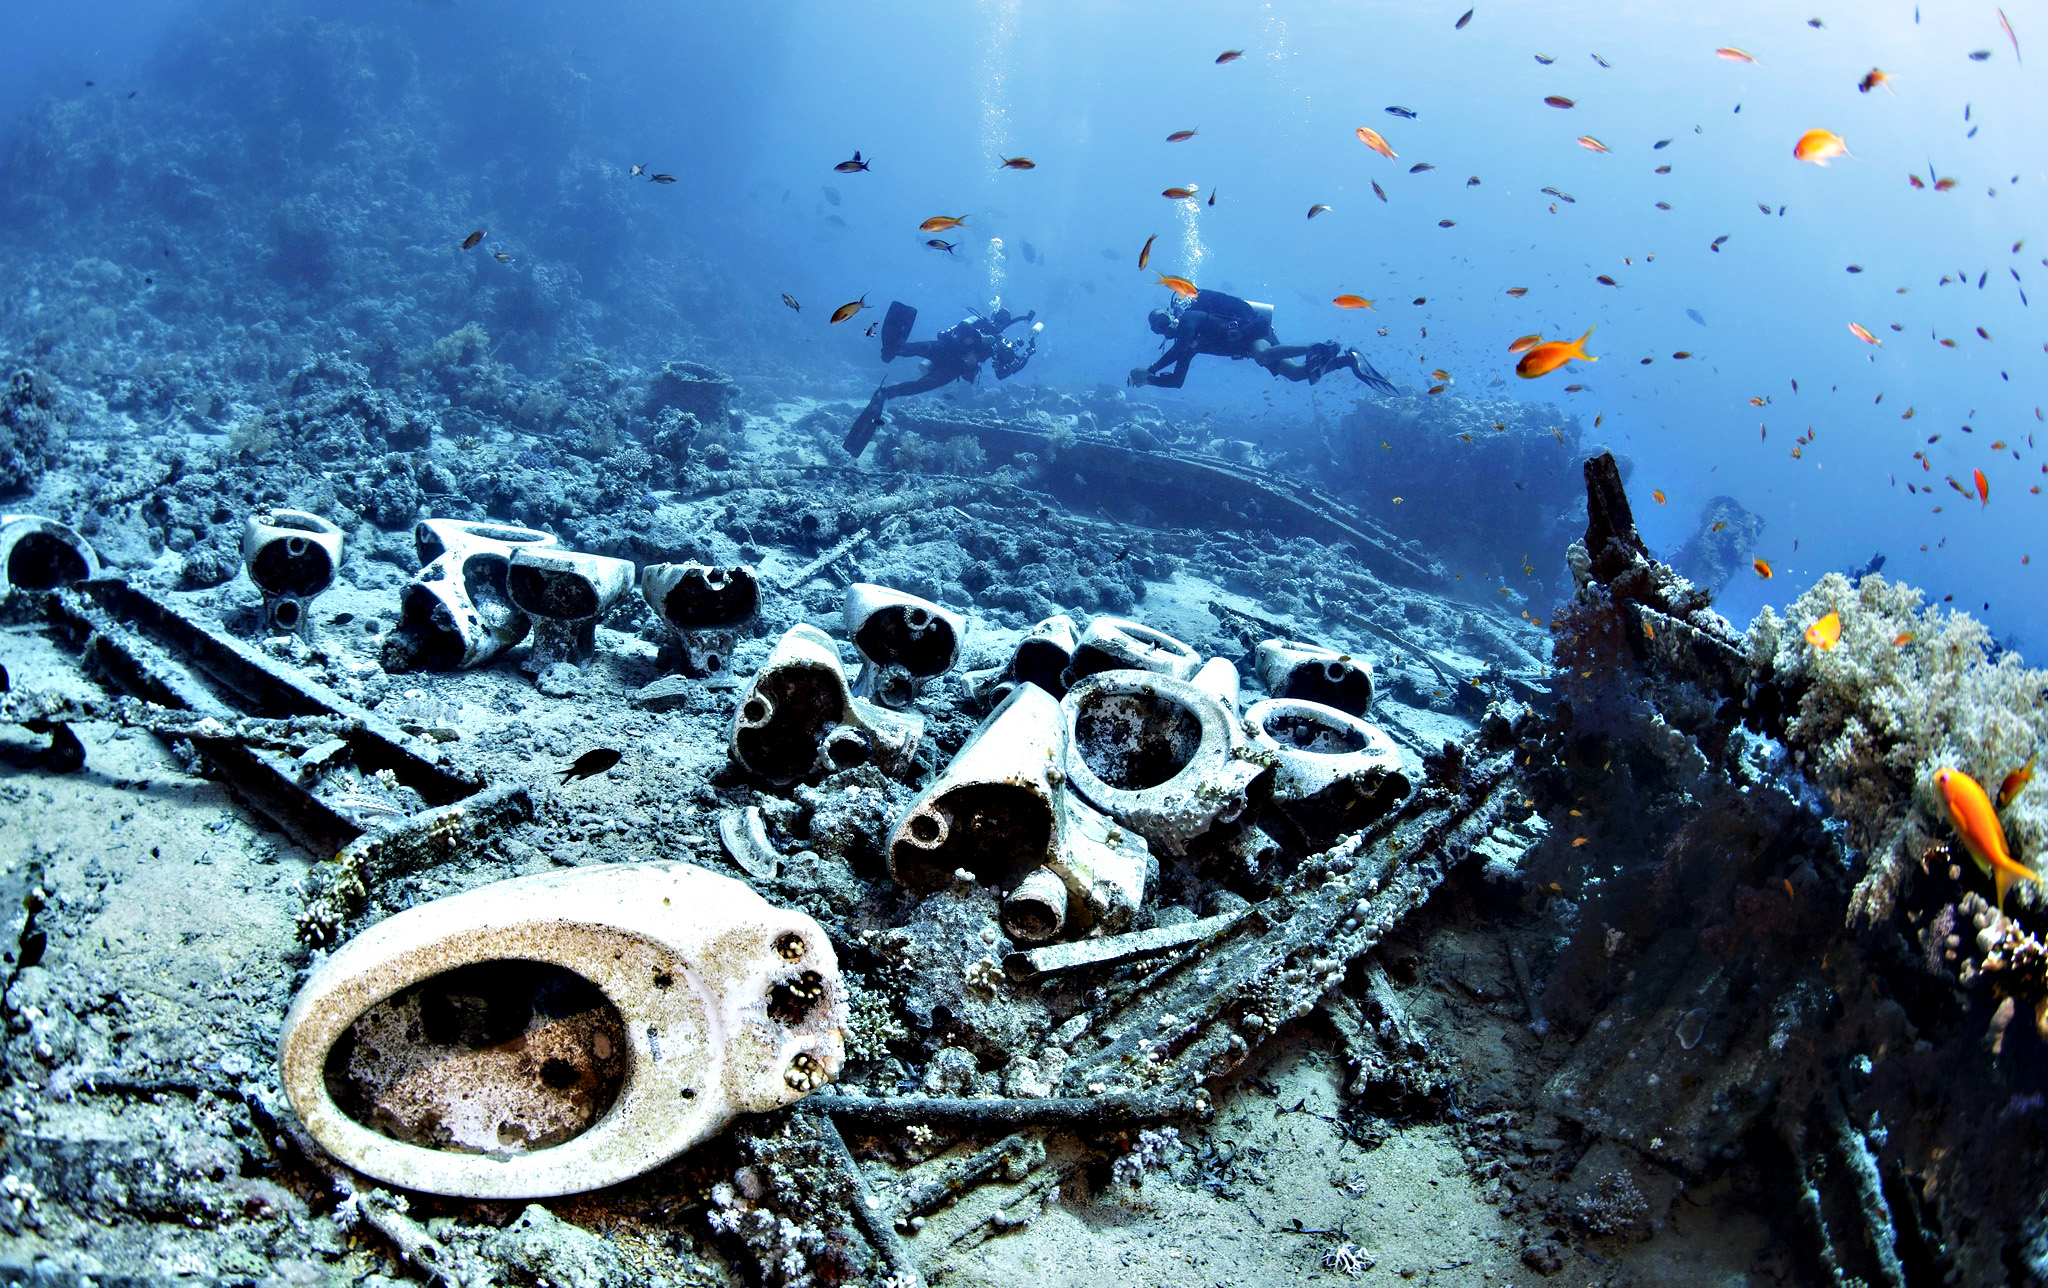 Divers swim above toilets from a wreck near the Yolanda Reef at Ras Mohammad, close to Sharm El Sheikh, Egypt, 23 July 2015. The famous dive site of the Ras Mohammed National Park contains the remains of the 'Yolanda' wreck, which sank in the 1970s, leaving toilets and bath tubs on the sea bed.